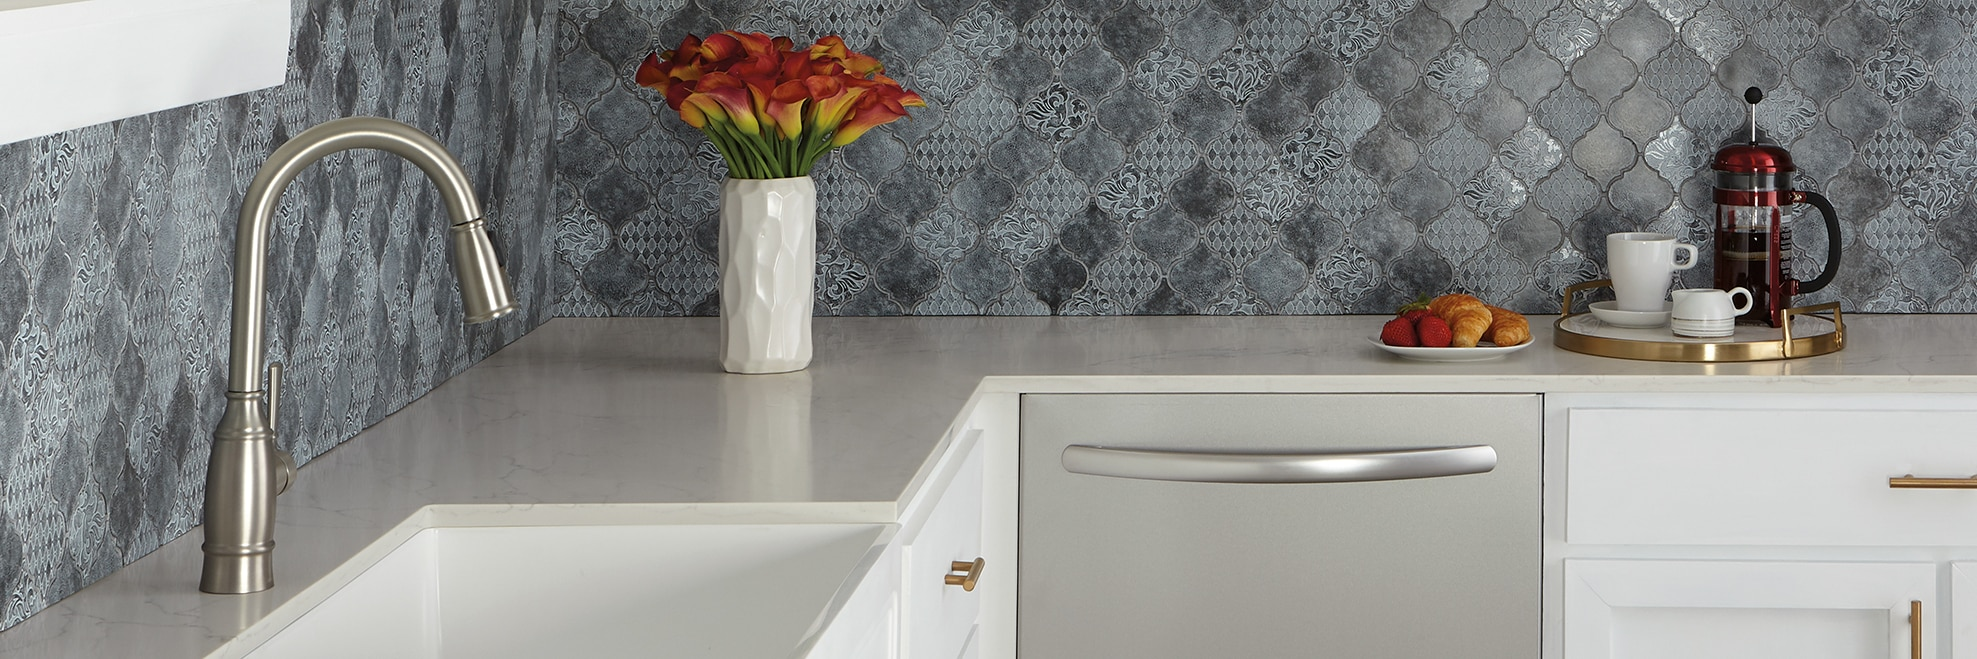 Kitchen backsplash of blue metal arabesque mosaic tile with a bouquet of red calla lilies on an off-white quartz countertop.